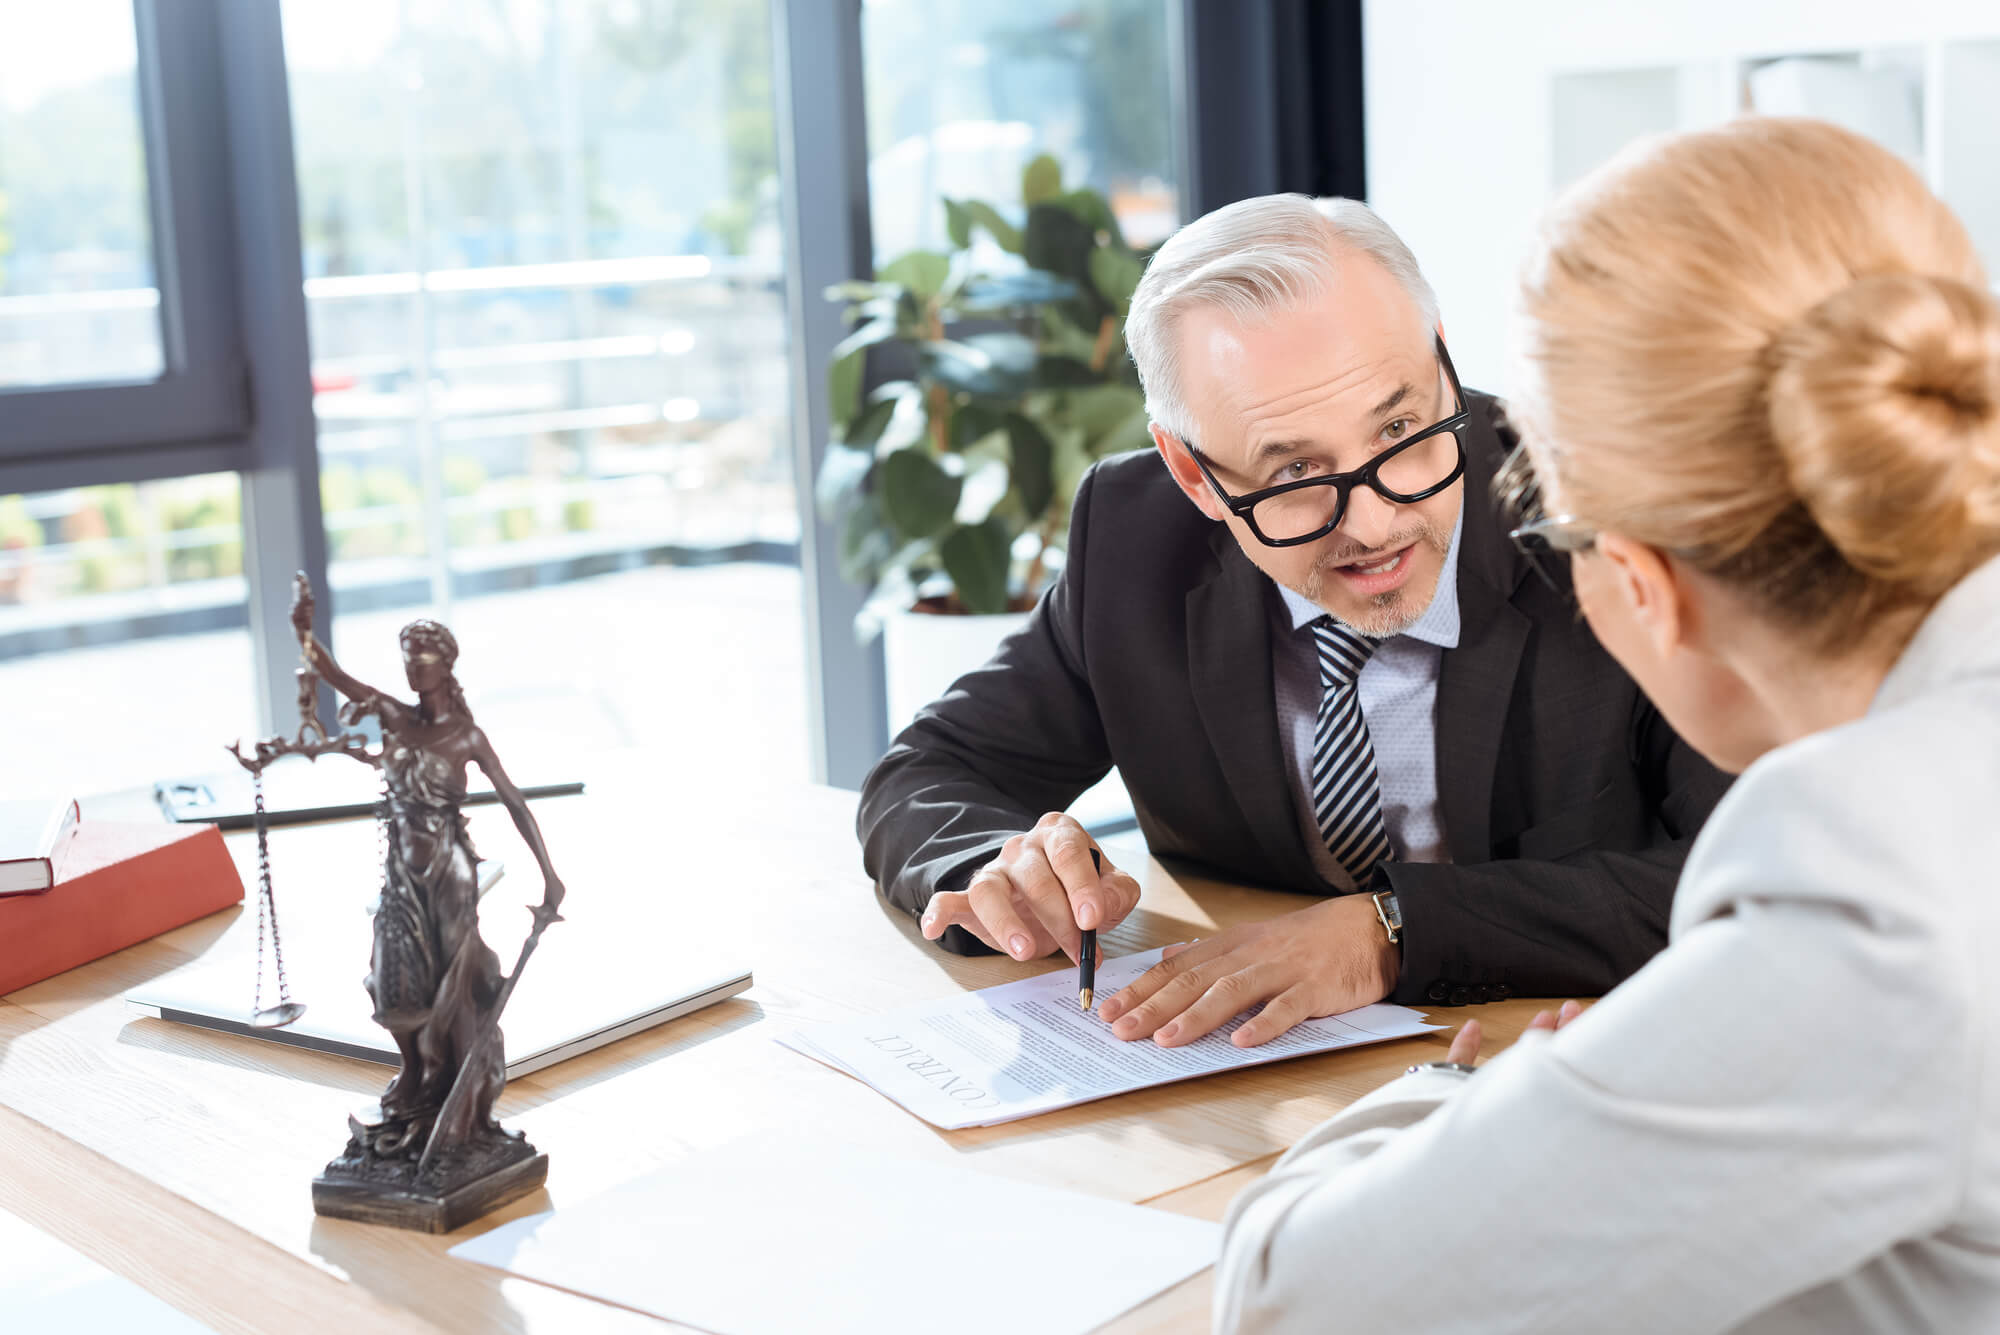 where can i get insurance agency consulting?